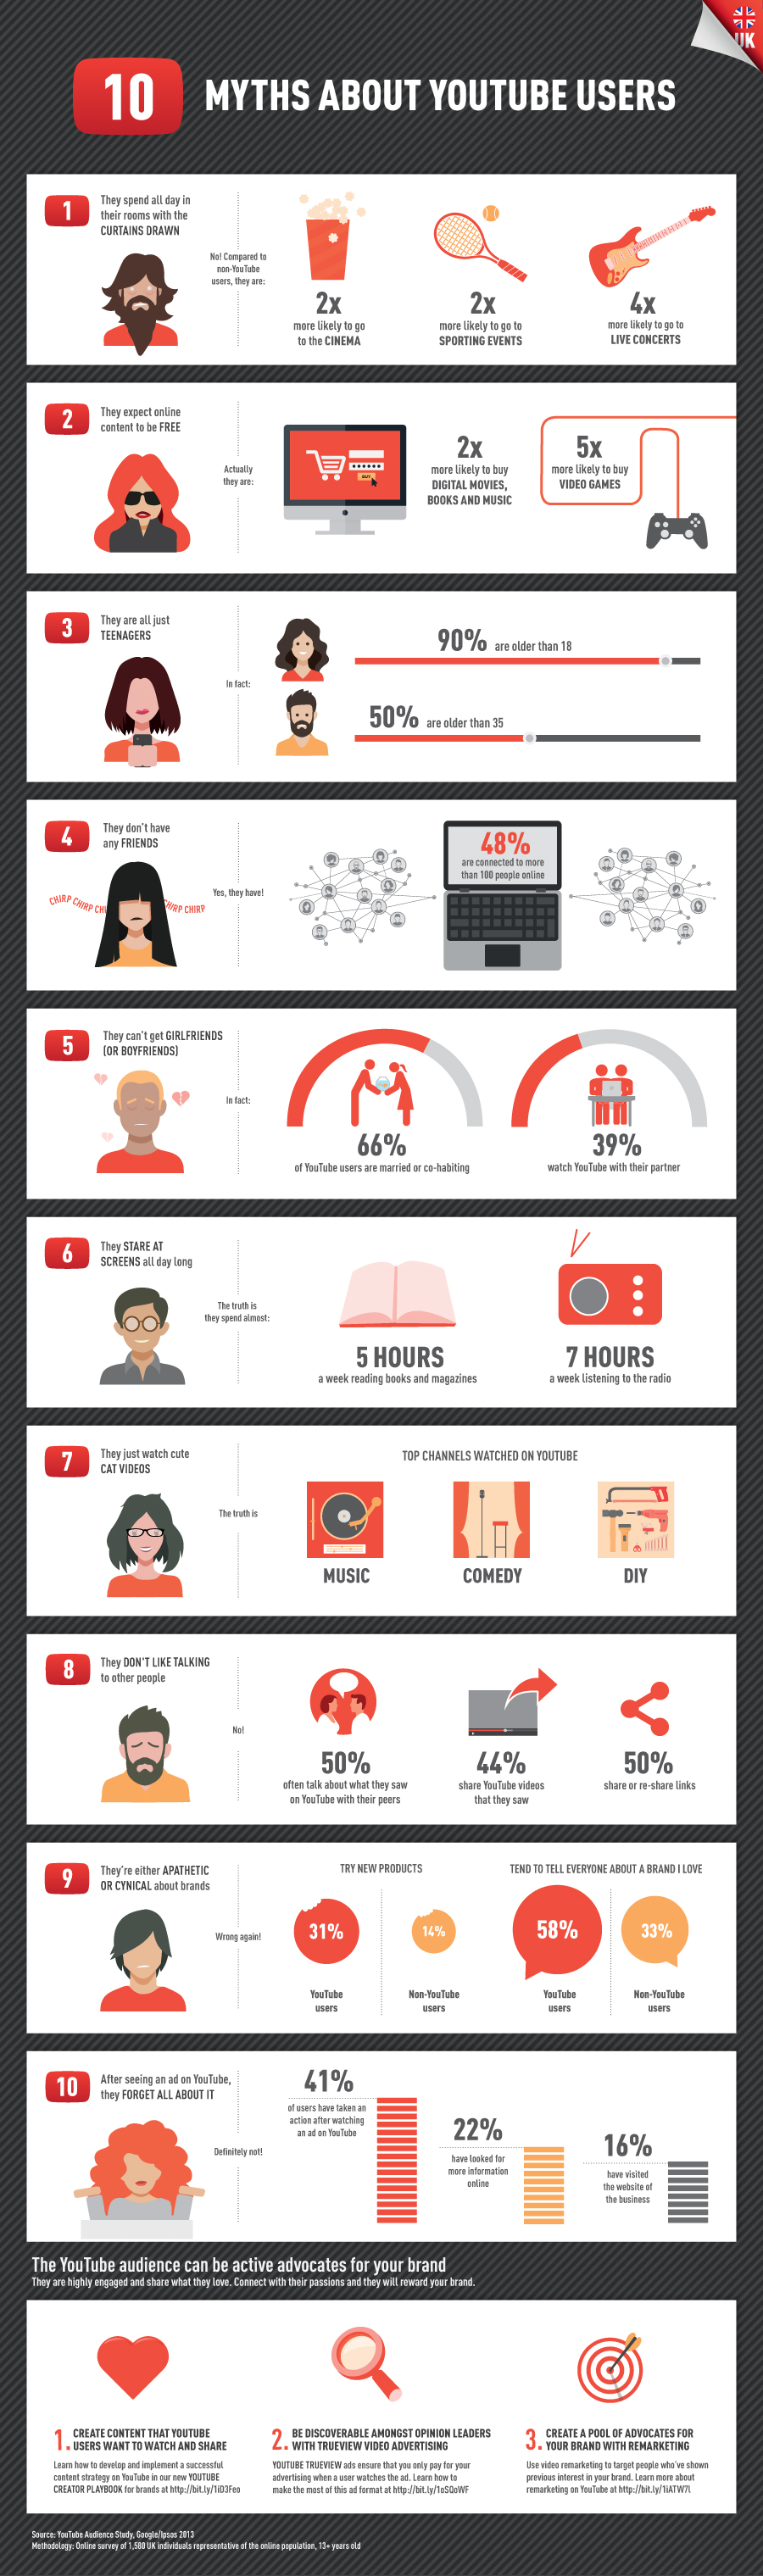 google-study-shows-youtube-viewers-can-be-your-brand-evangelists-infographic